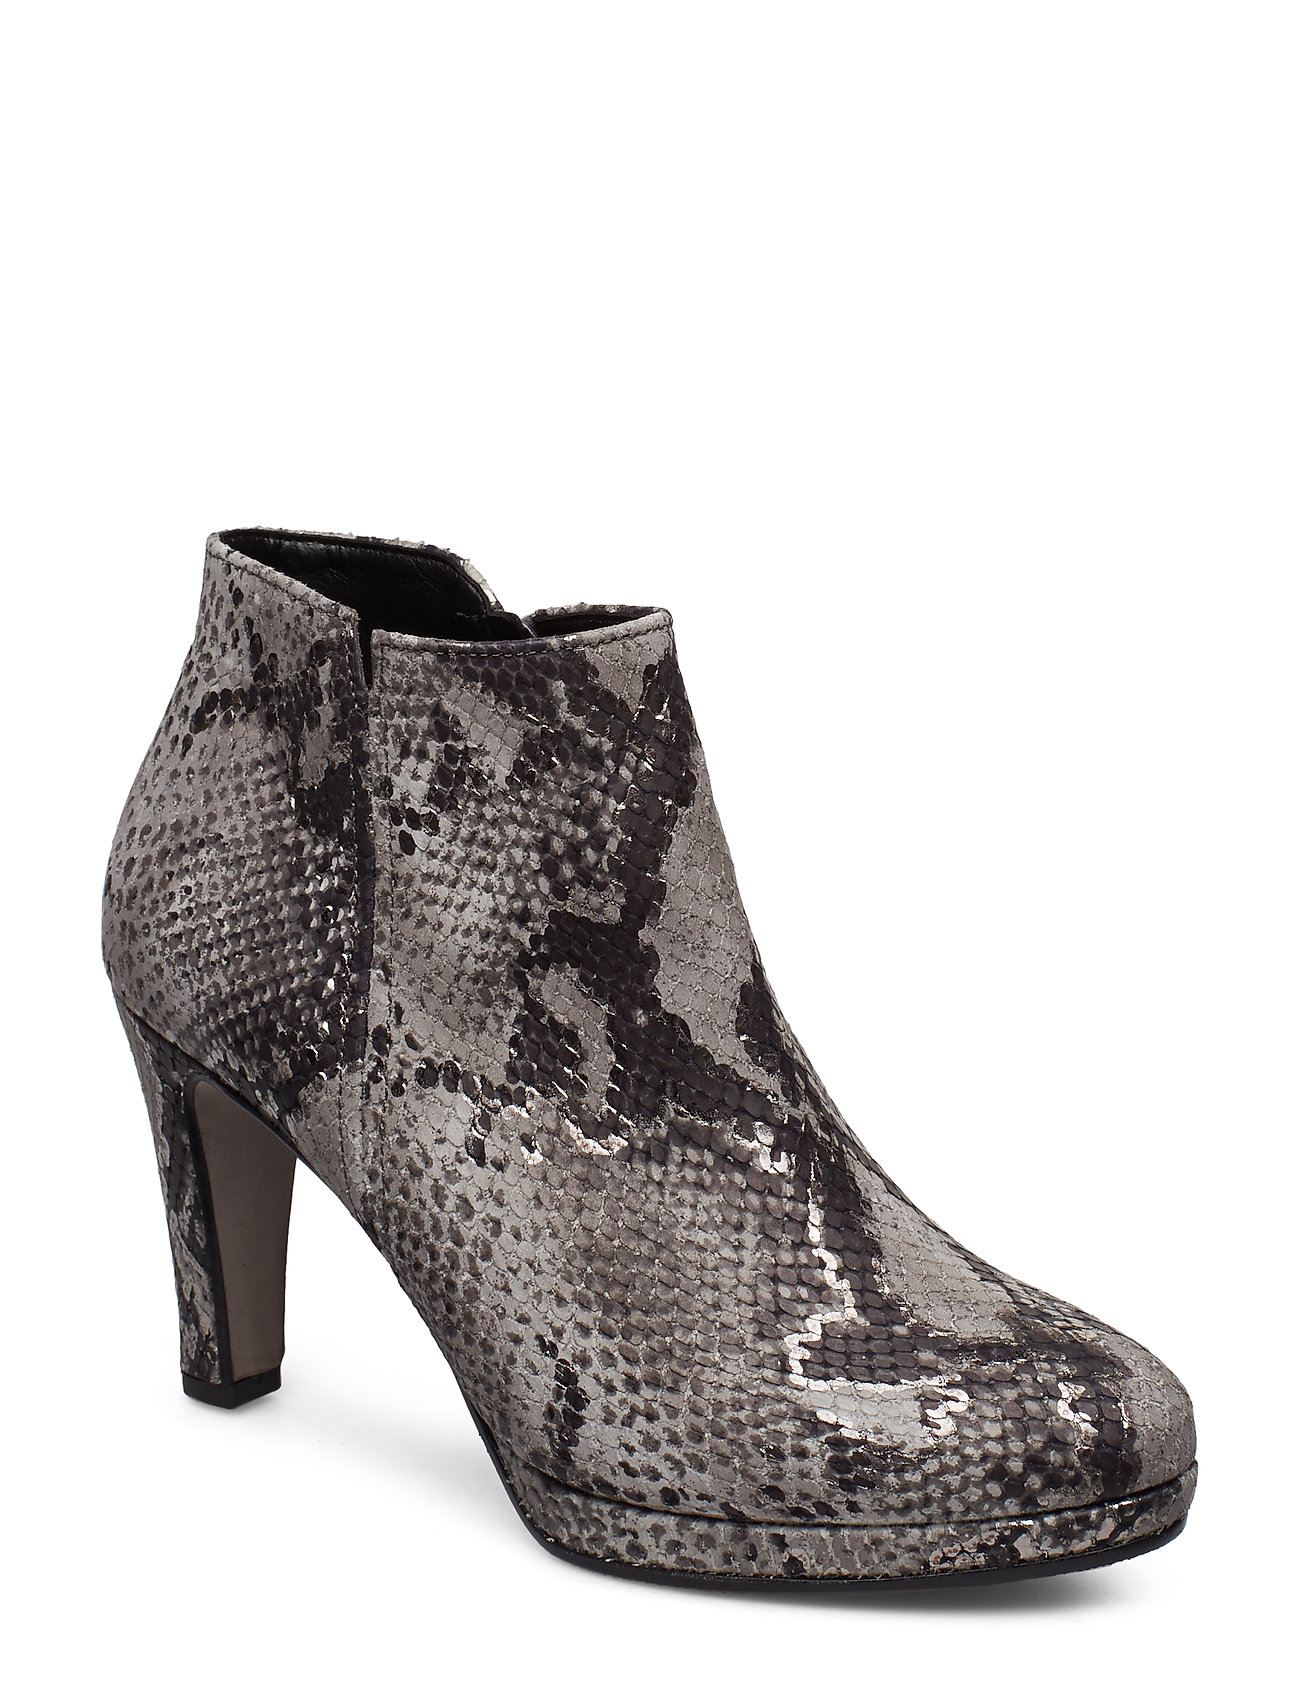 Image of Ankle Boots Shoes Boots Ankle Boots Ankle Boot - Heel Multi/mønstret Gabor (3406225597)